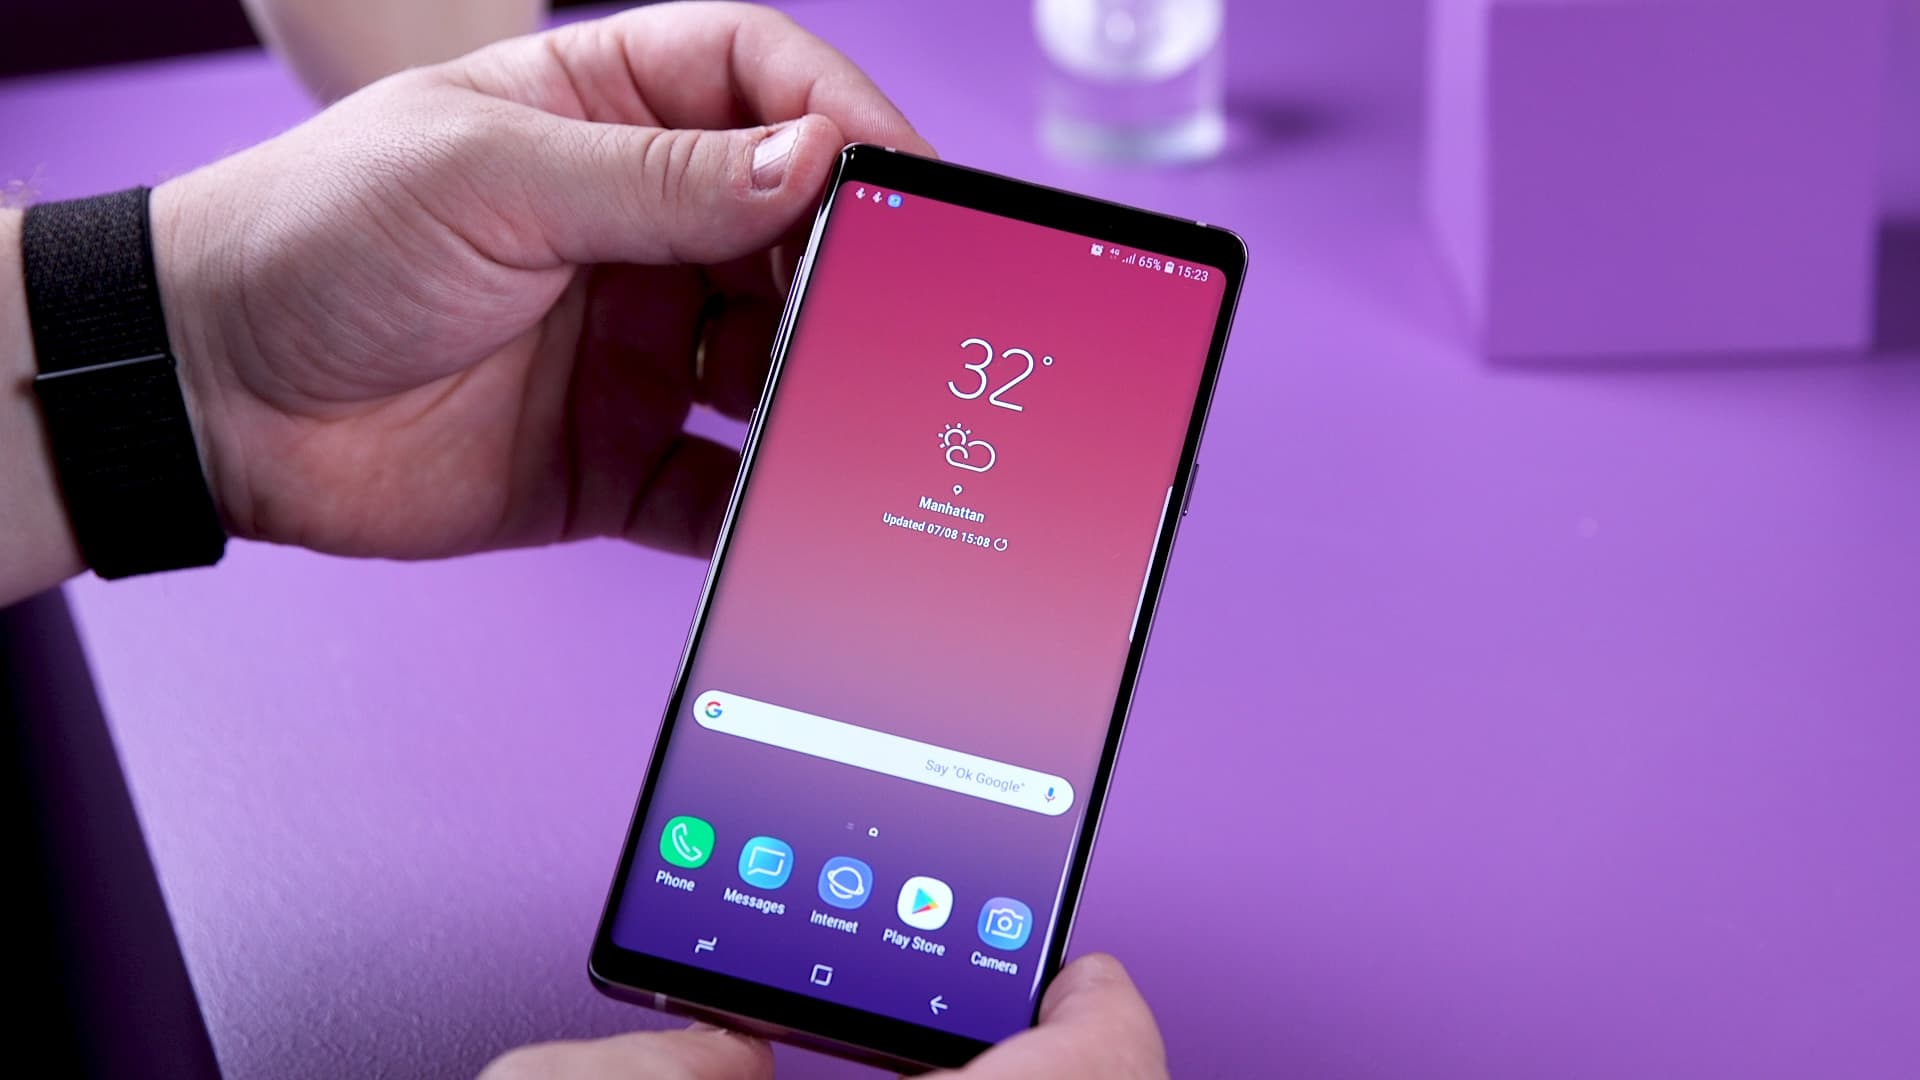 7 cool things Samsung Galaxy Note 9 can do that the iPhone can't